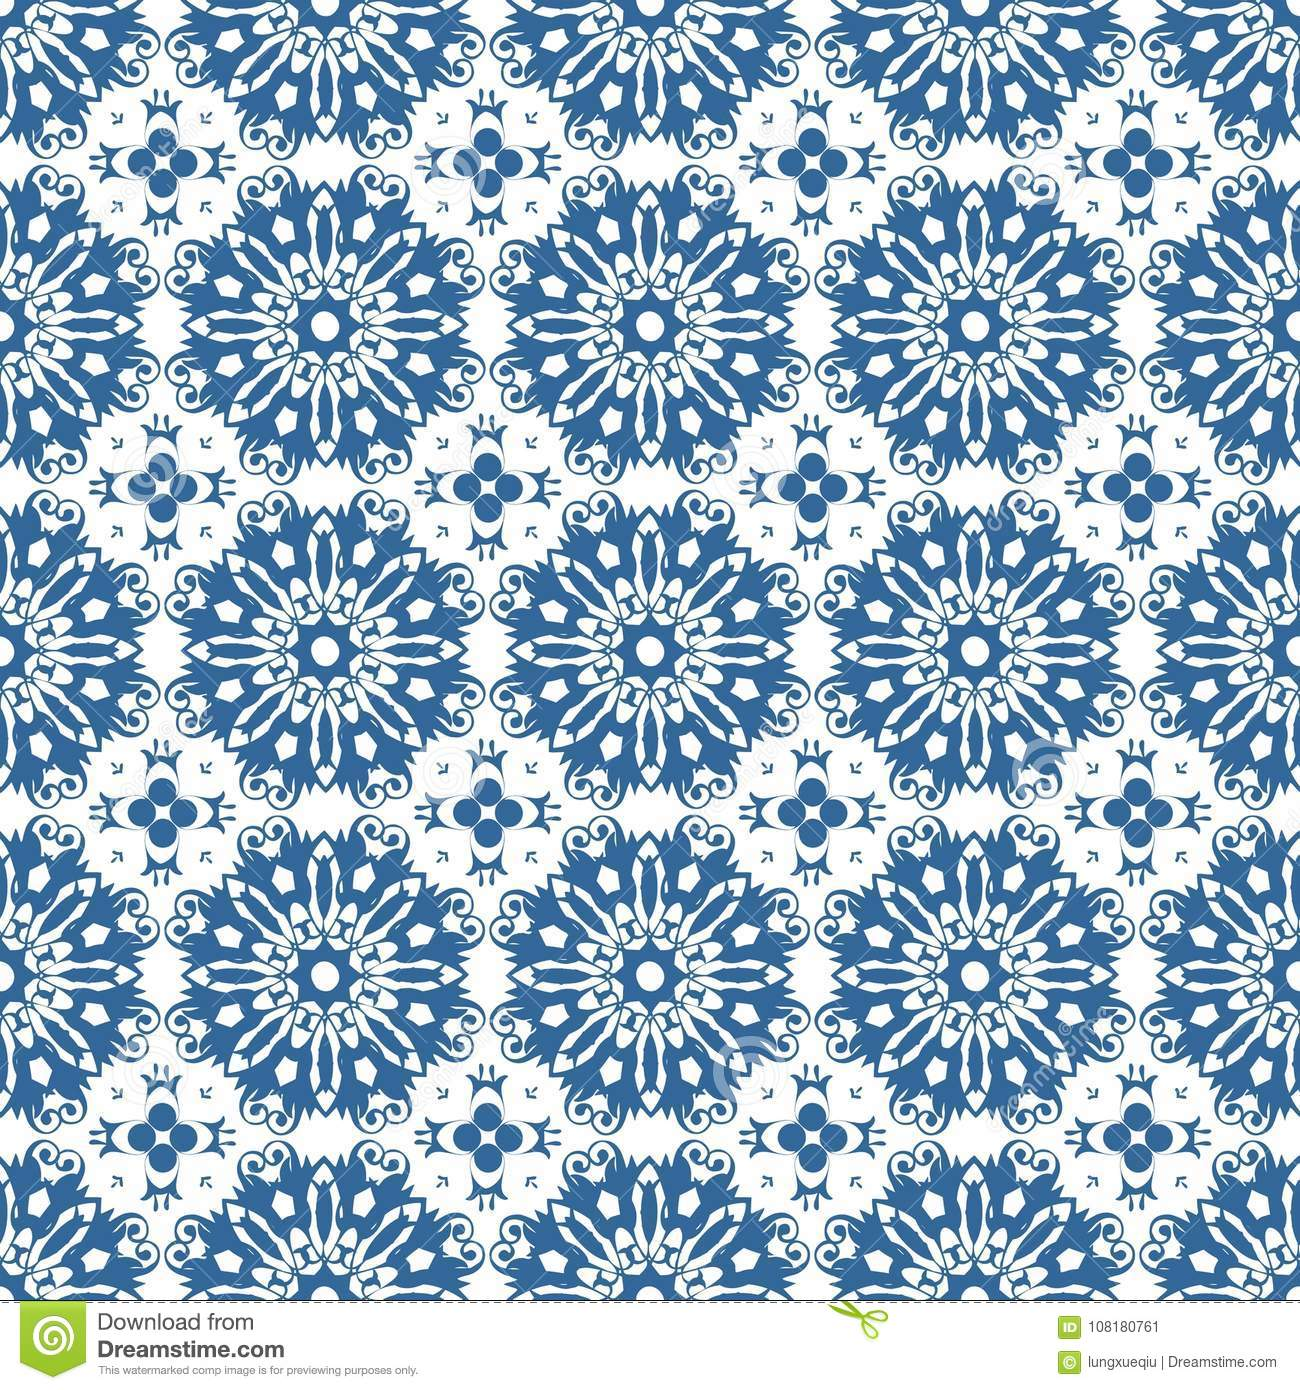 Ornamental Oriental Blue Floral Beautiful Royal Vintage Spring Abstract Seamless Pattern Texture Wallpaper